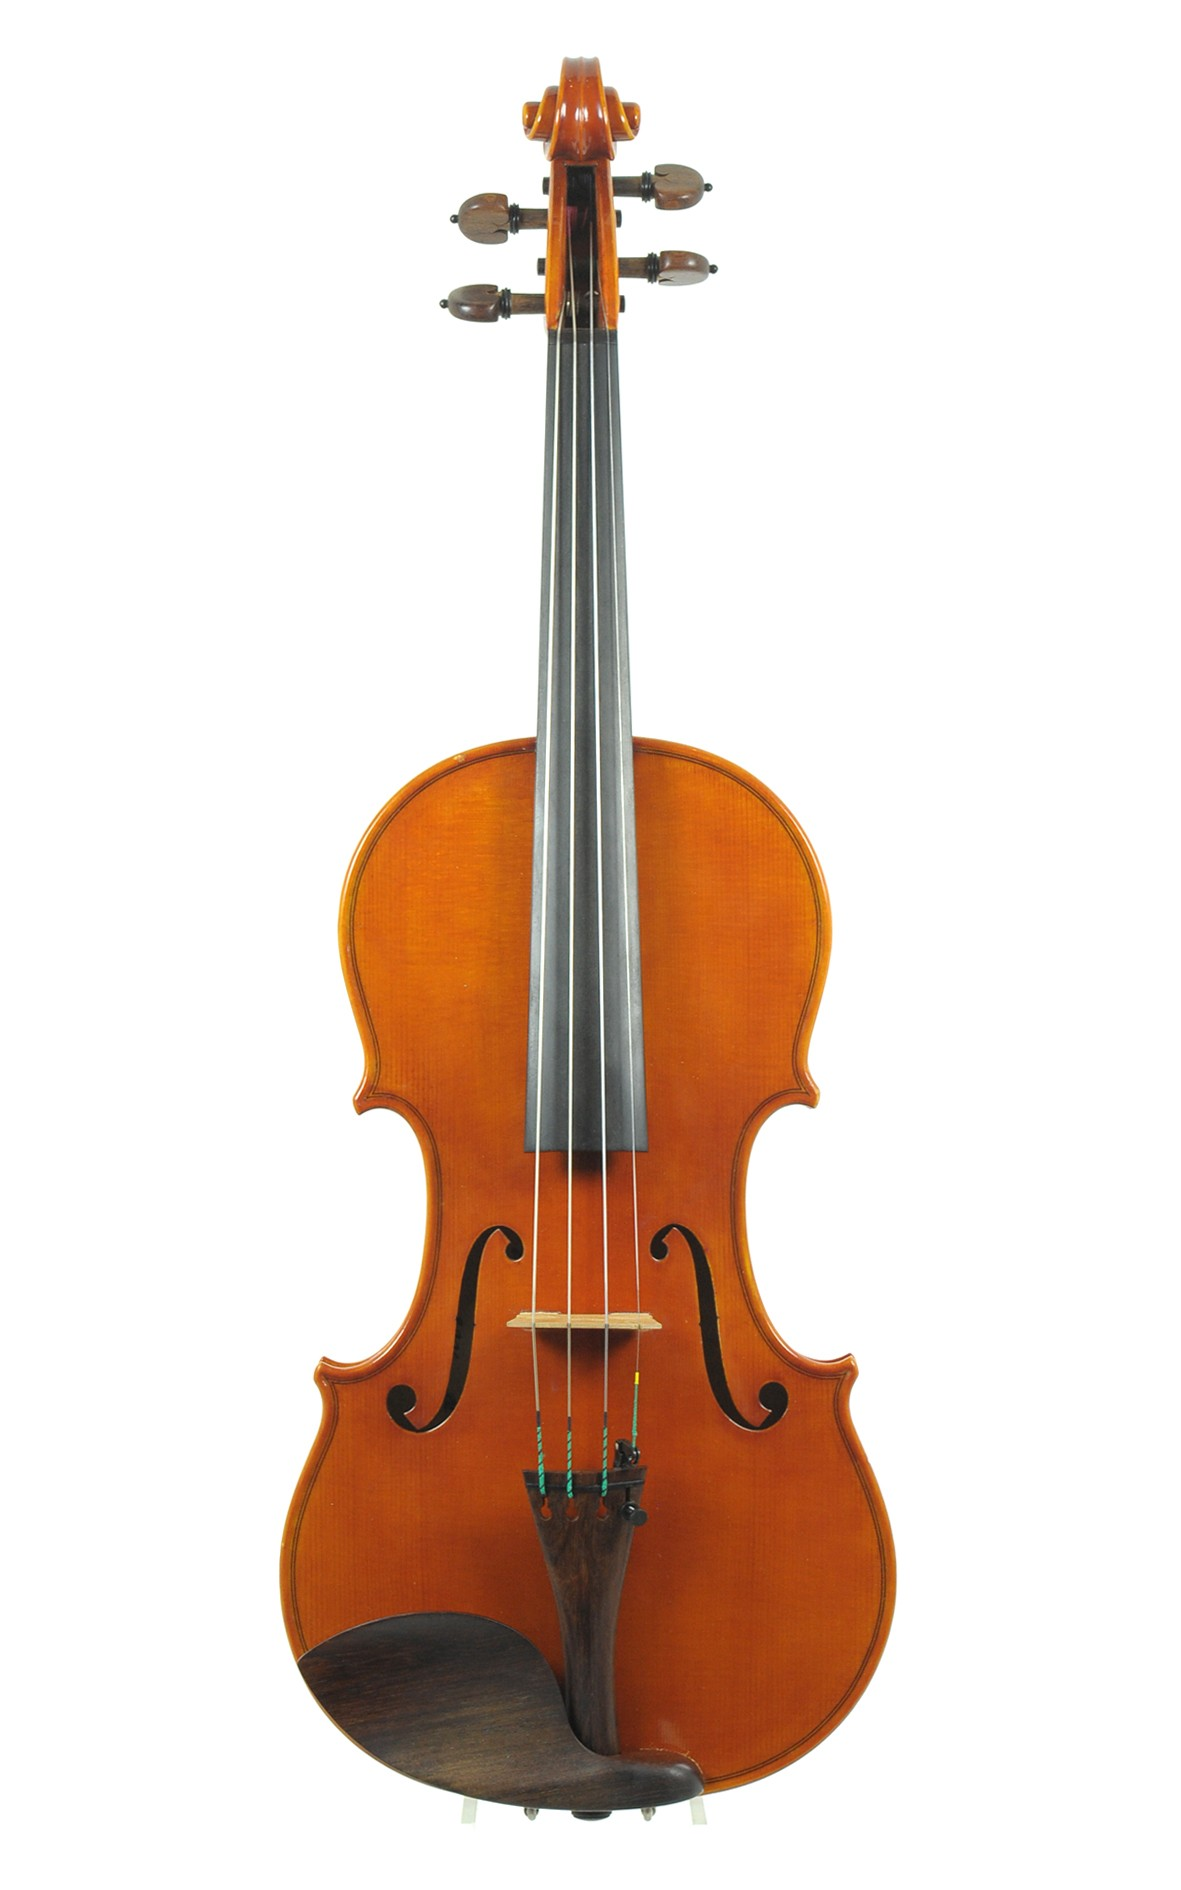 Contemporary Italian master violin by Nicola Vendrame - table